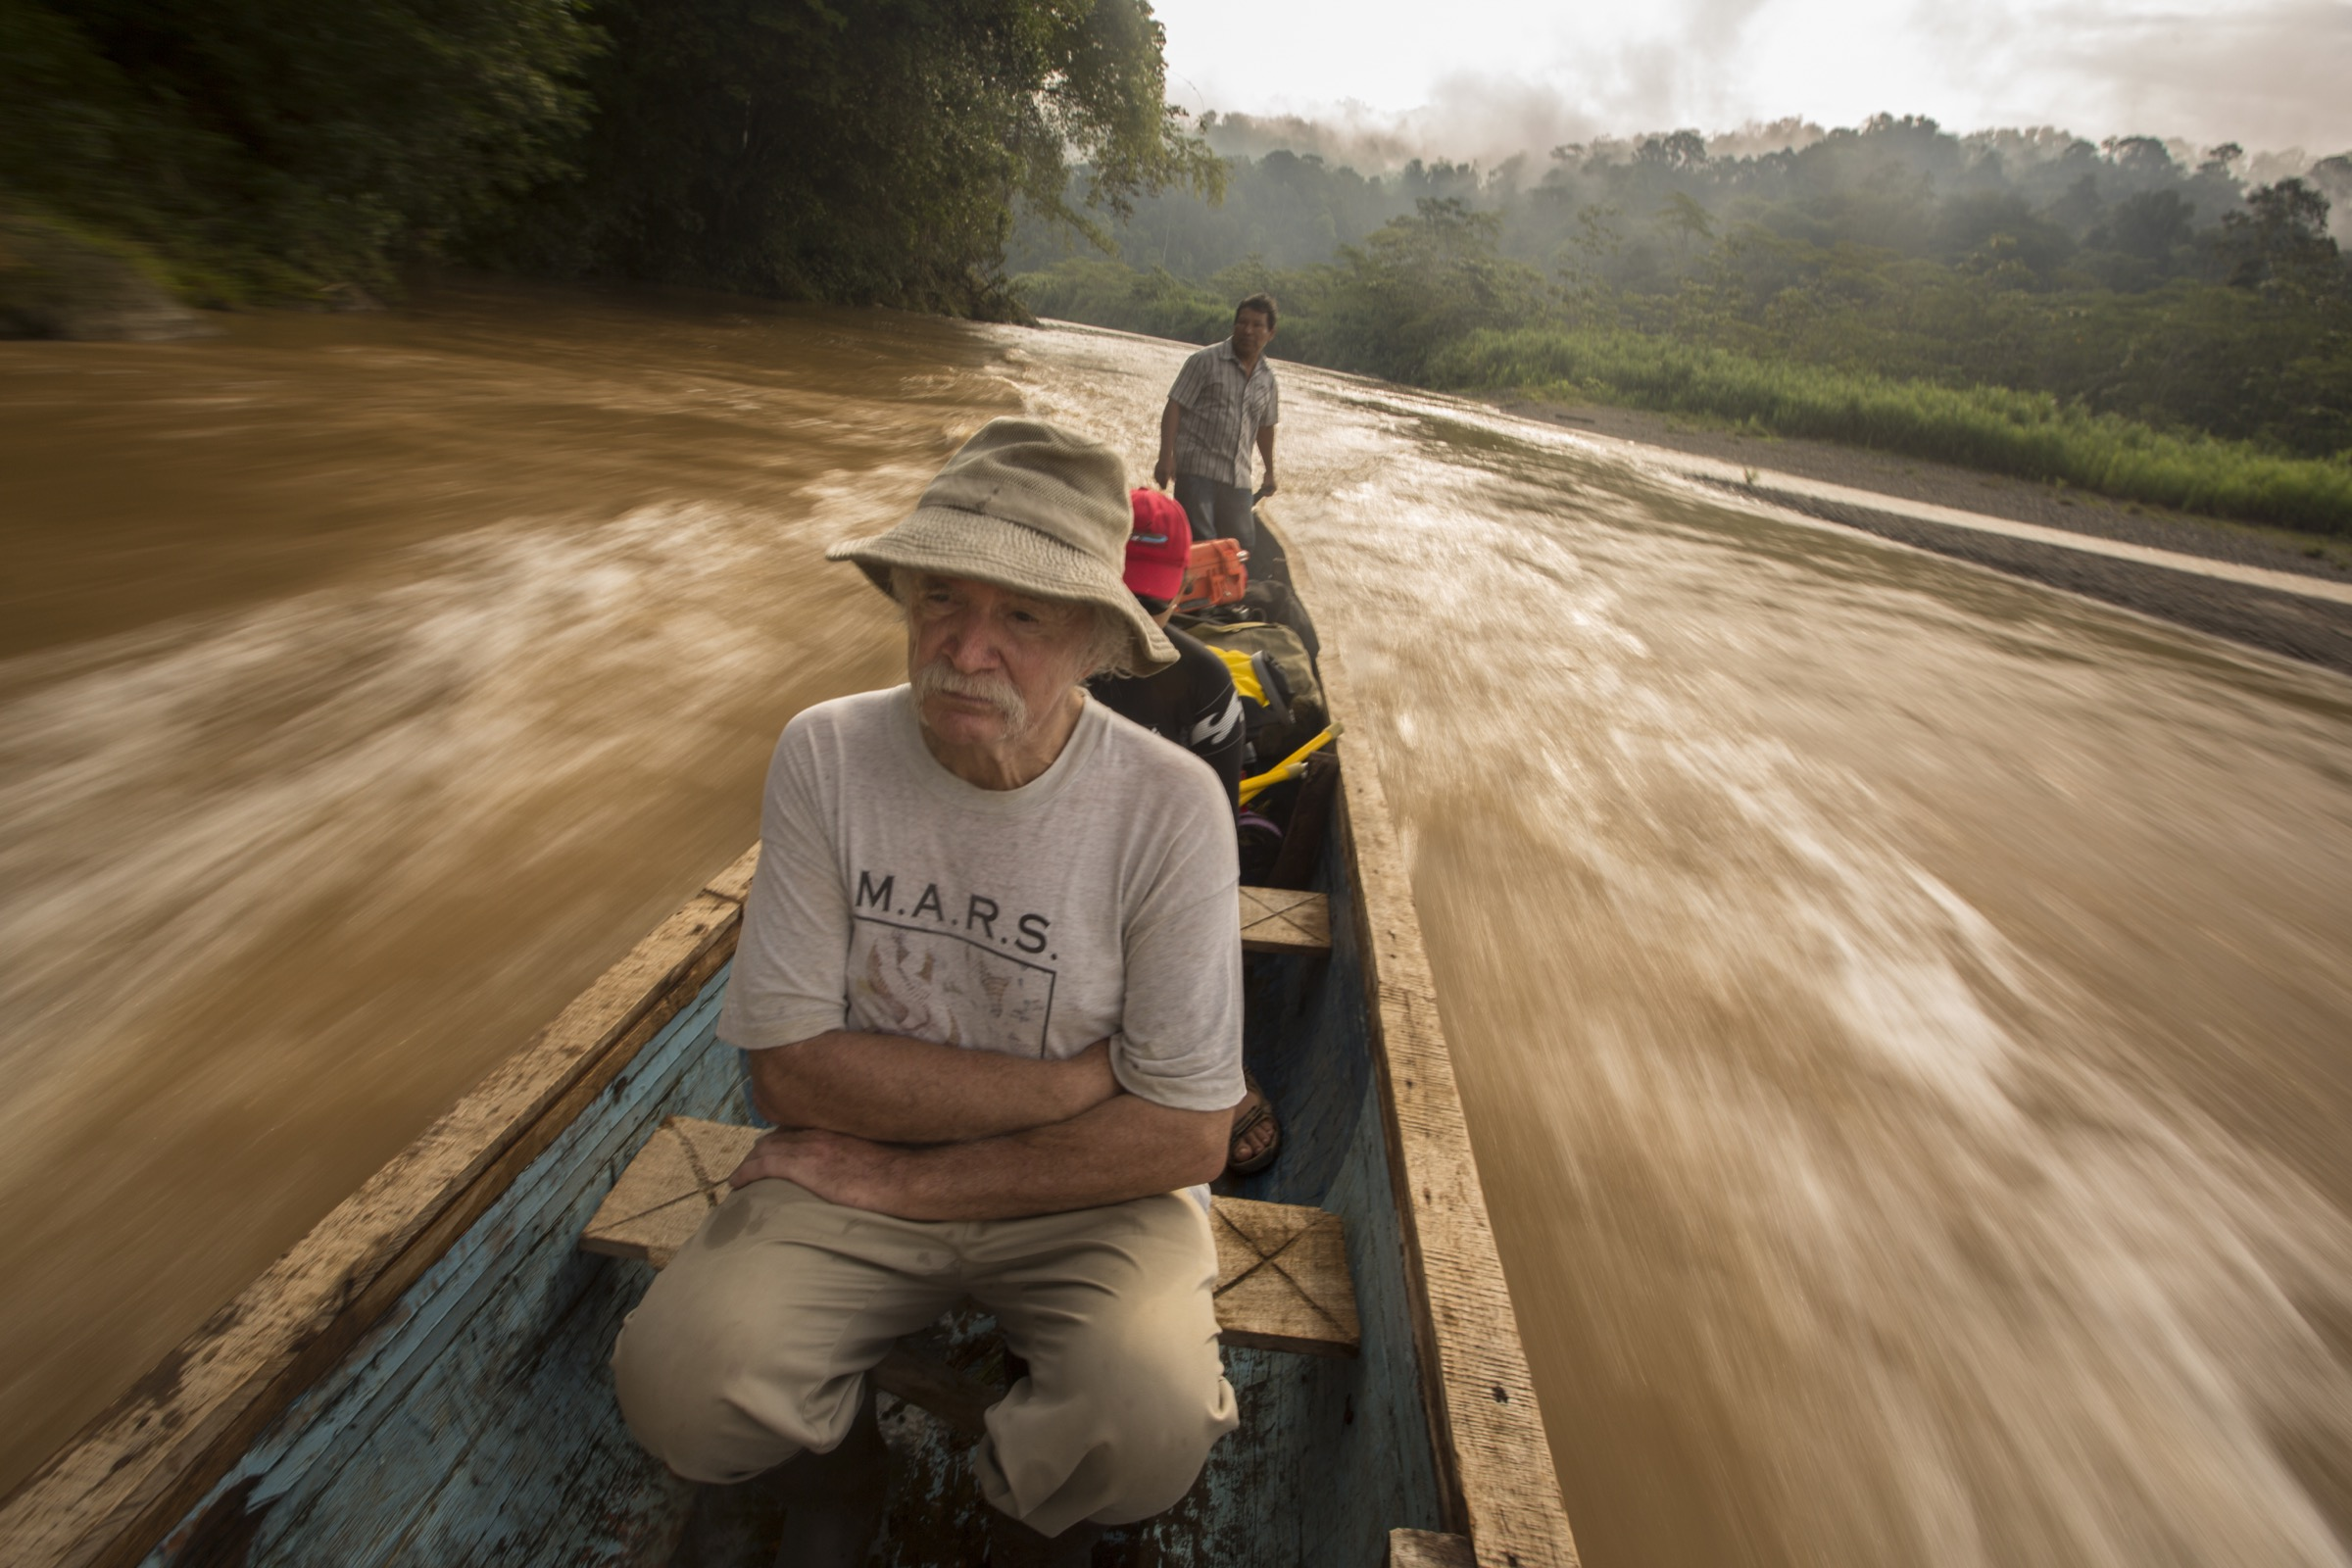 Bill McLarney, Maribel Mafla, and a Bribri guide travel up the Rio Yorkin by motorized canoe.